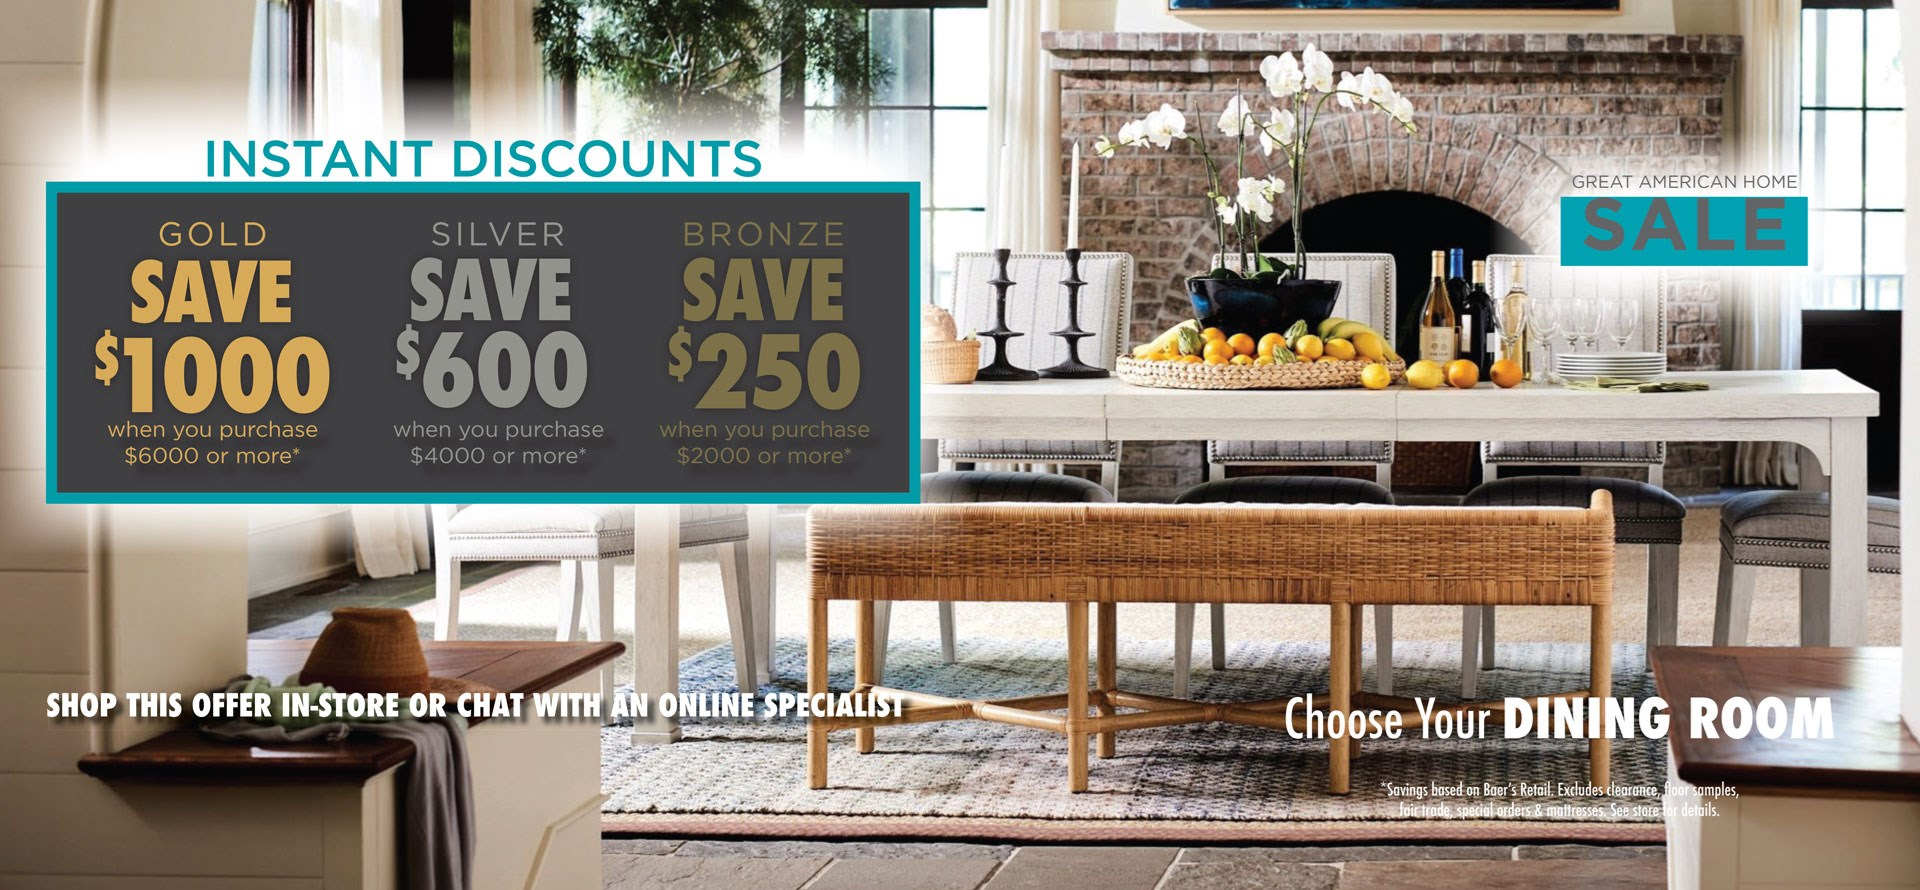 Great American Home Sale - Dining